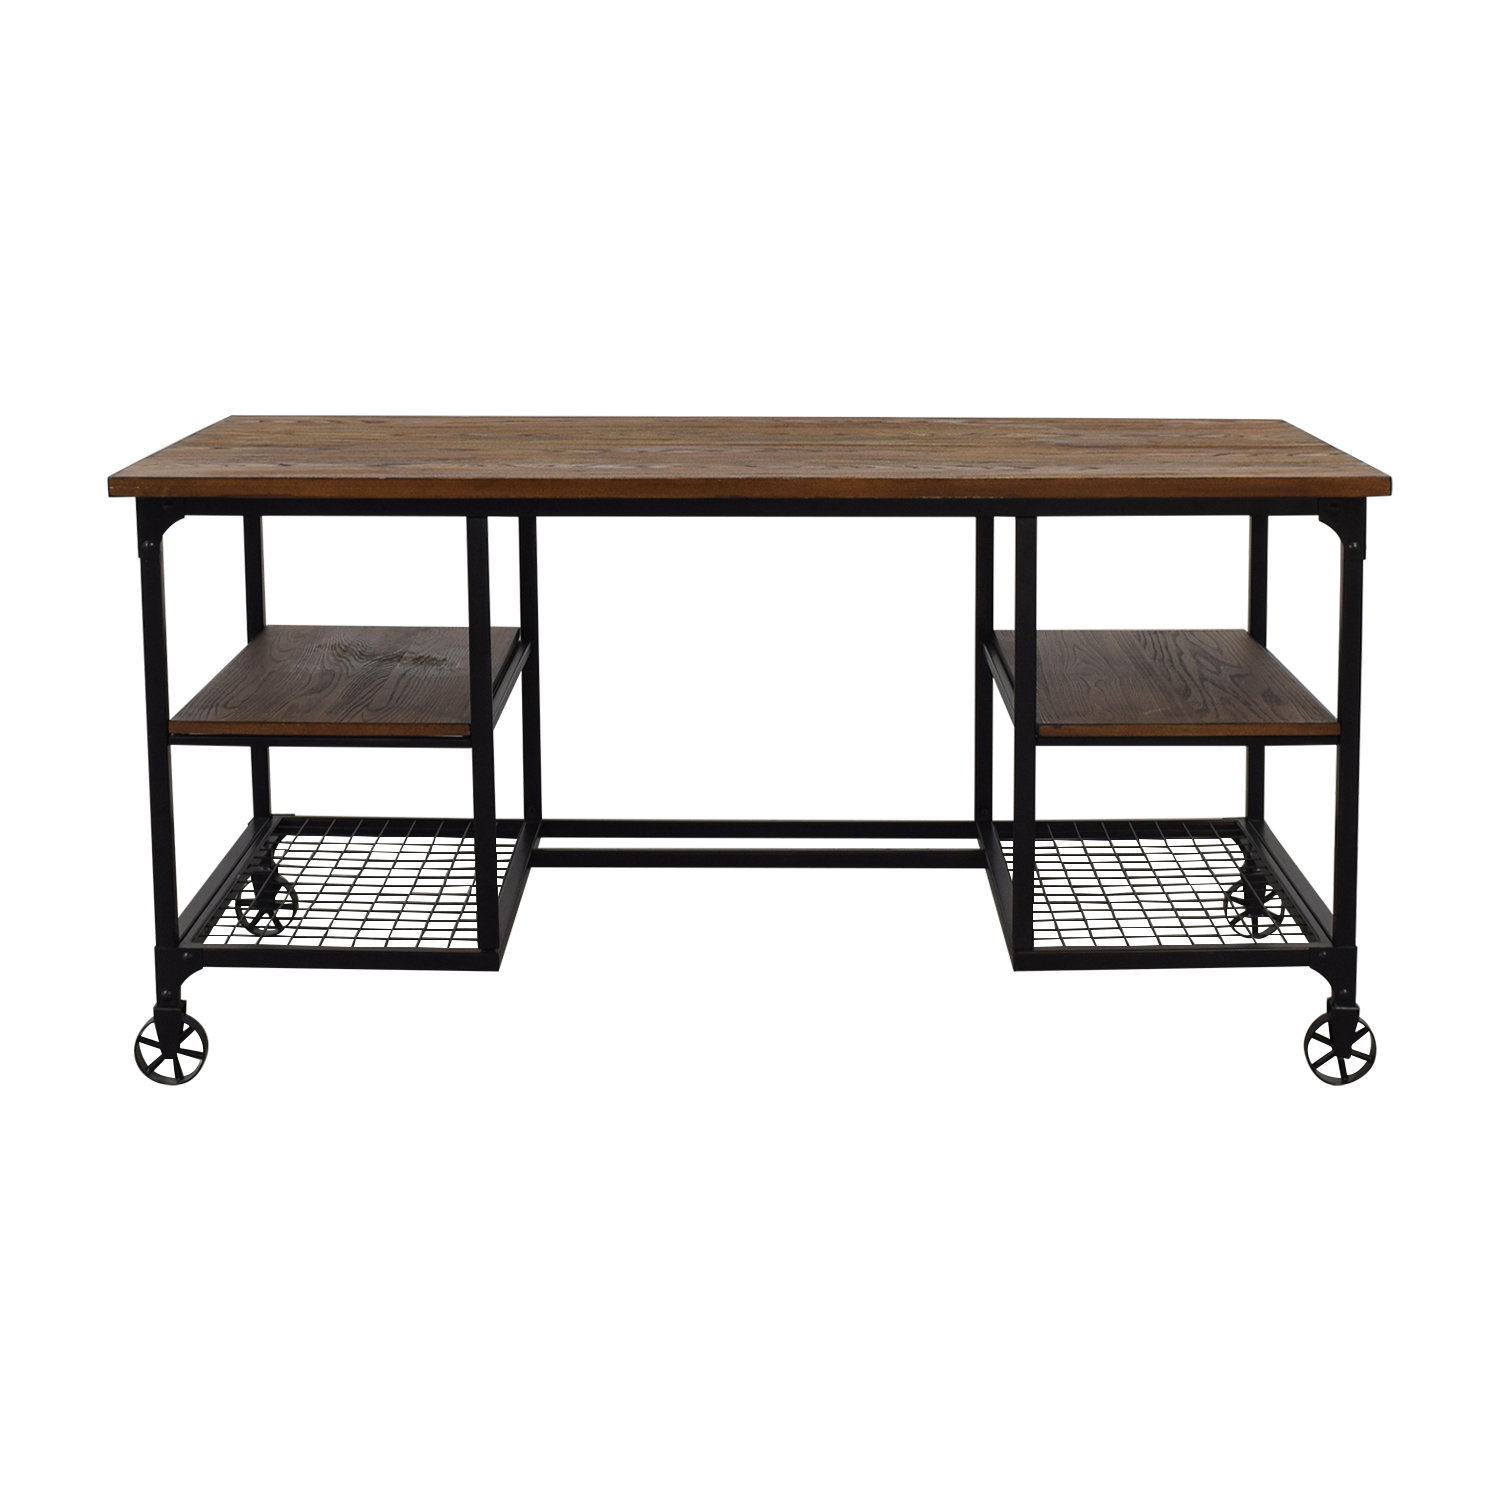 Inspire Classic Industrial Modern Rustic Storage Desk / Tables